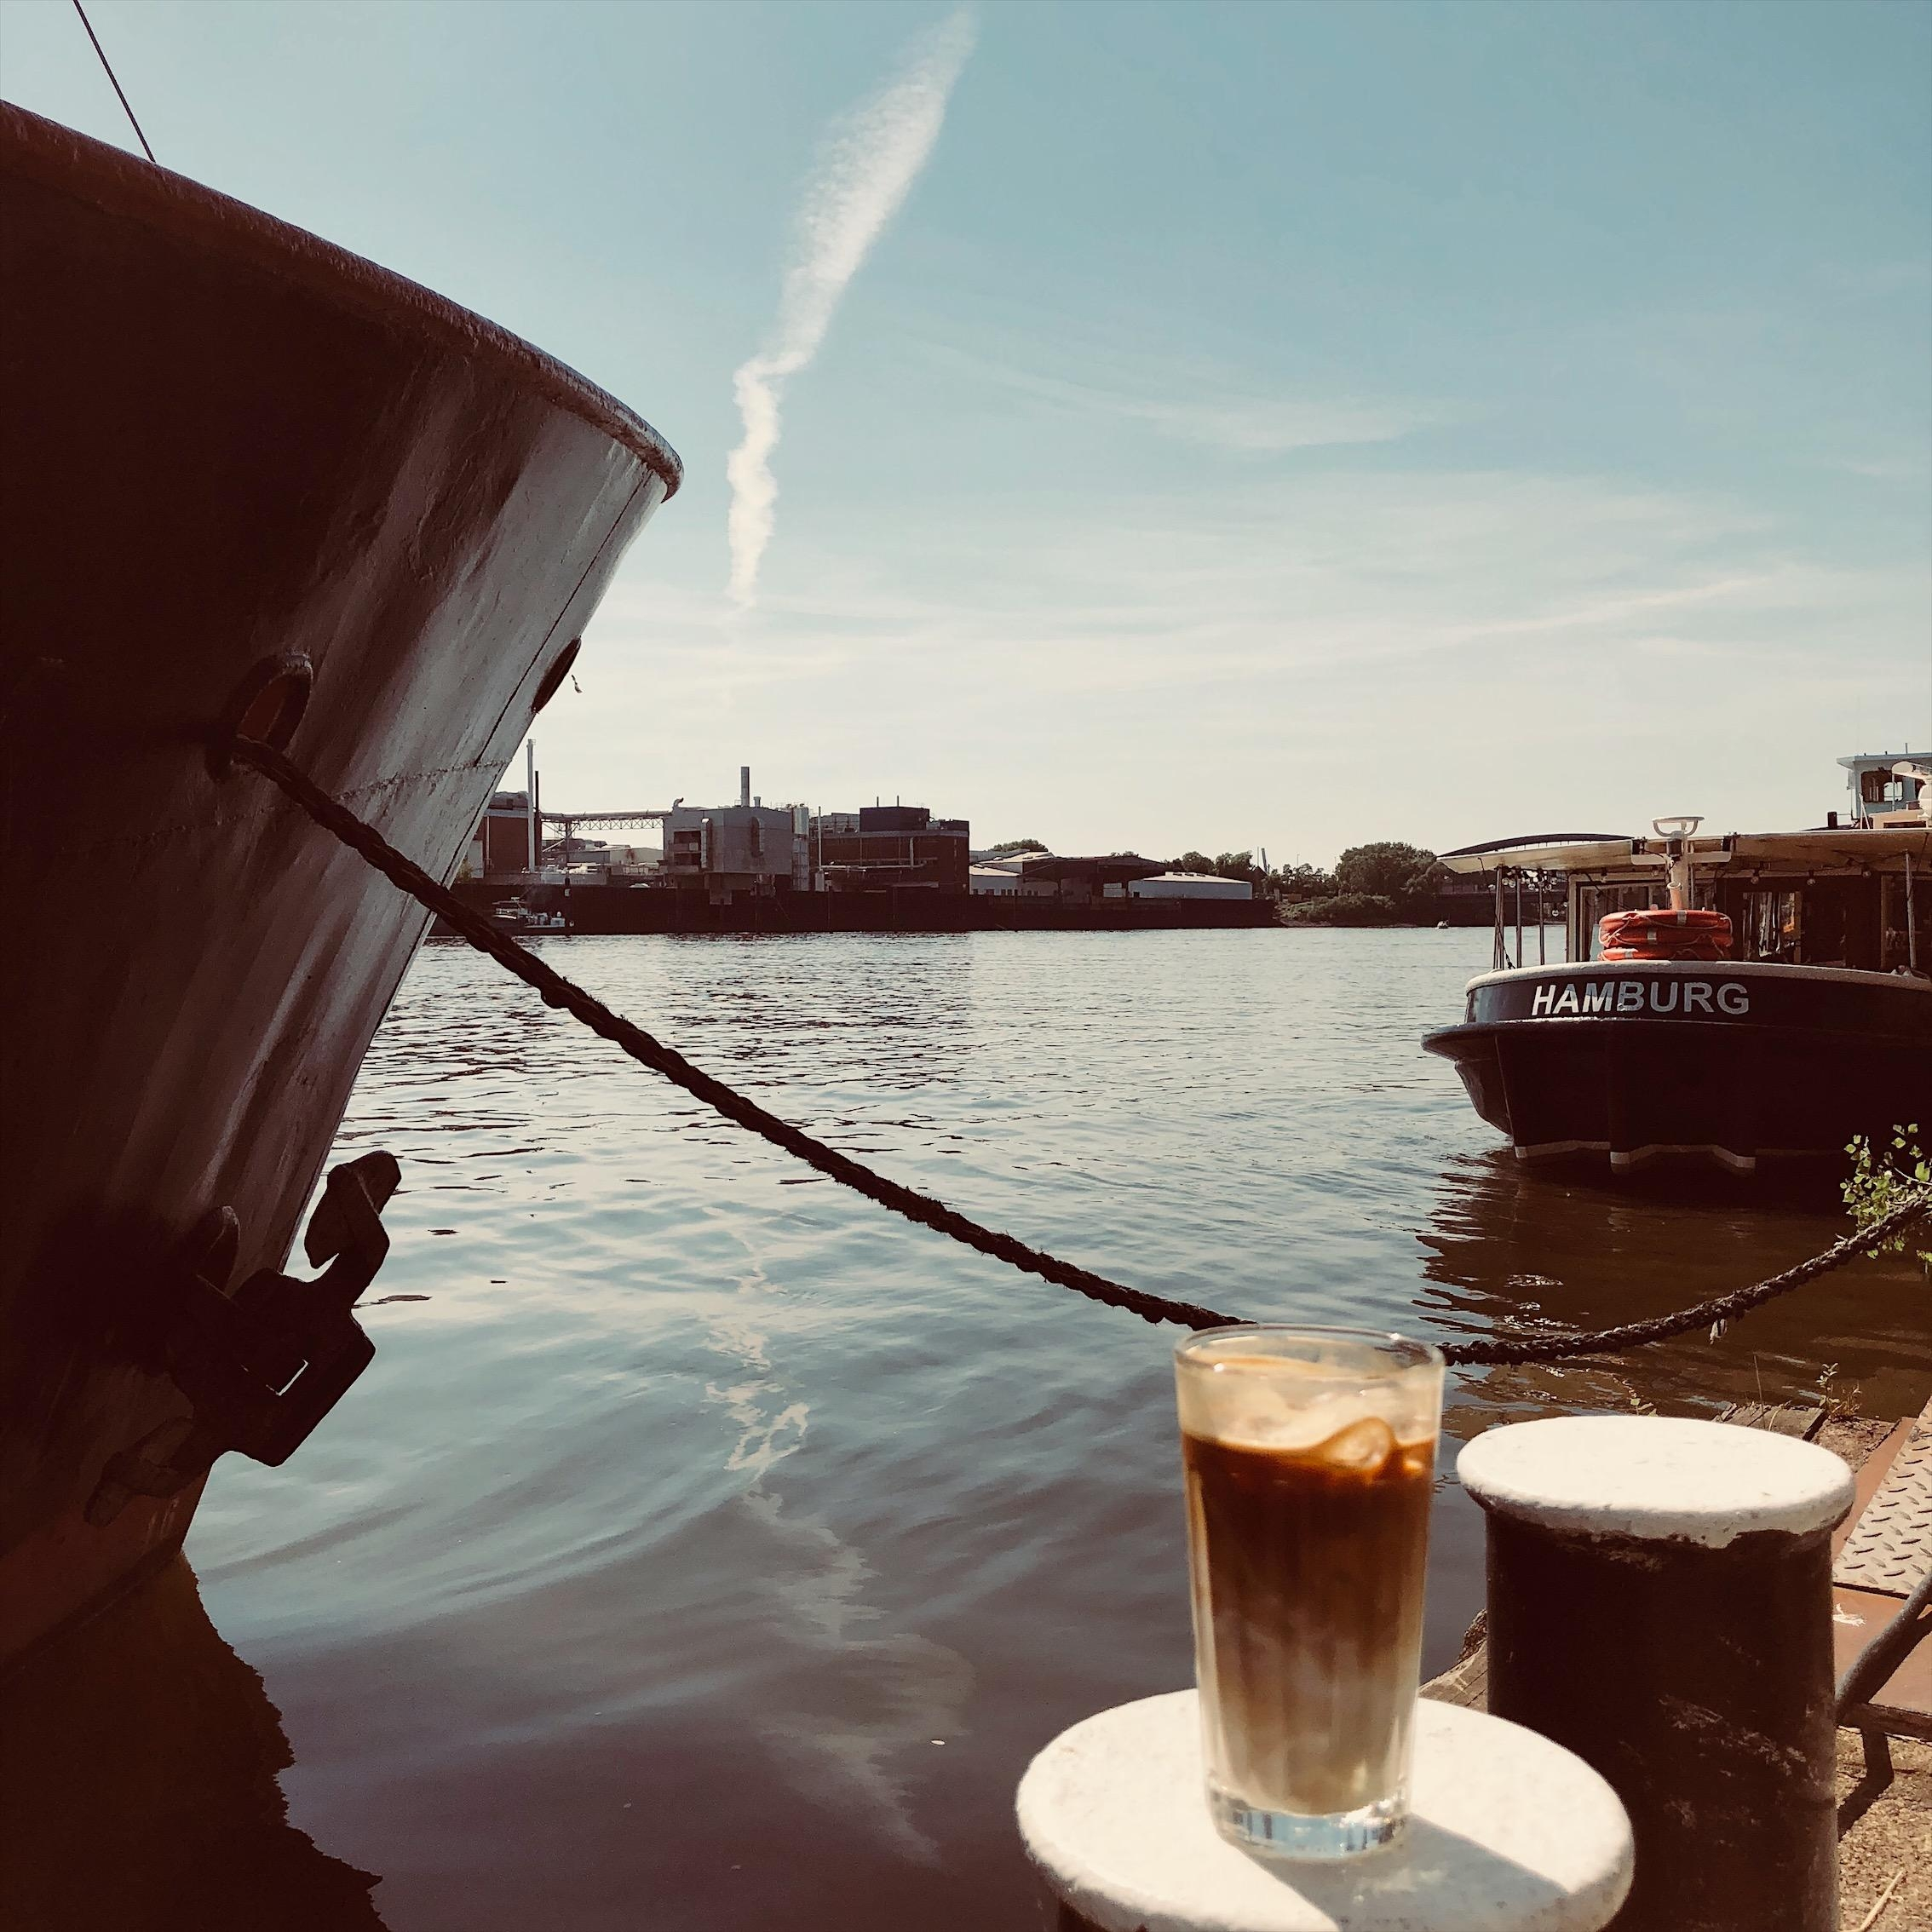 Perfekter Start #butfirstcoffee #entenwerder #hamburg #waterkant #thehappynow #hamburgahoi #coffee